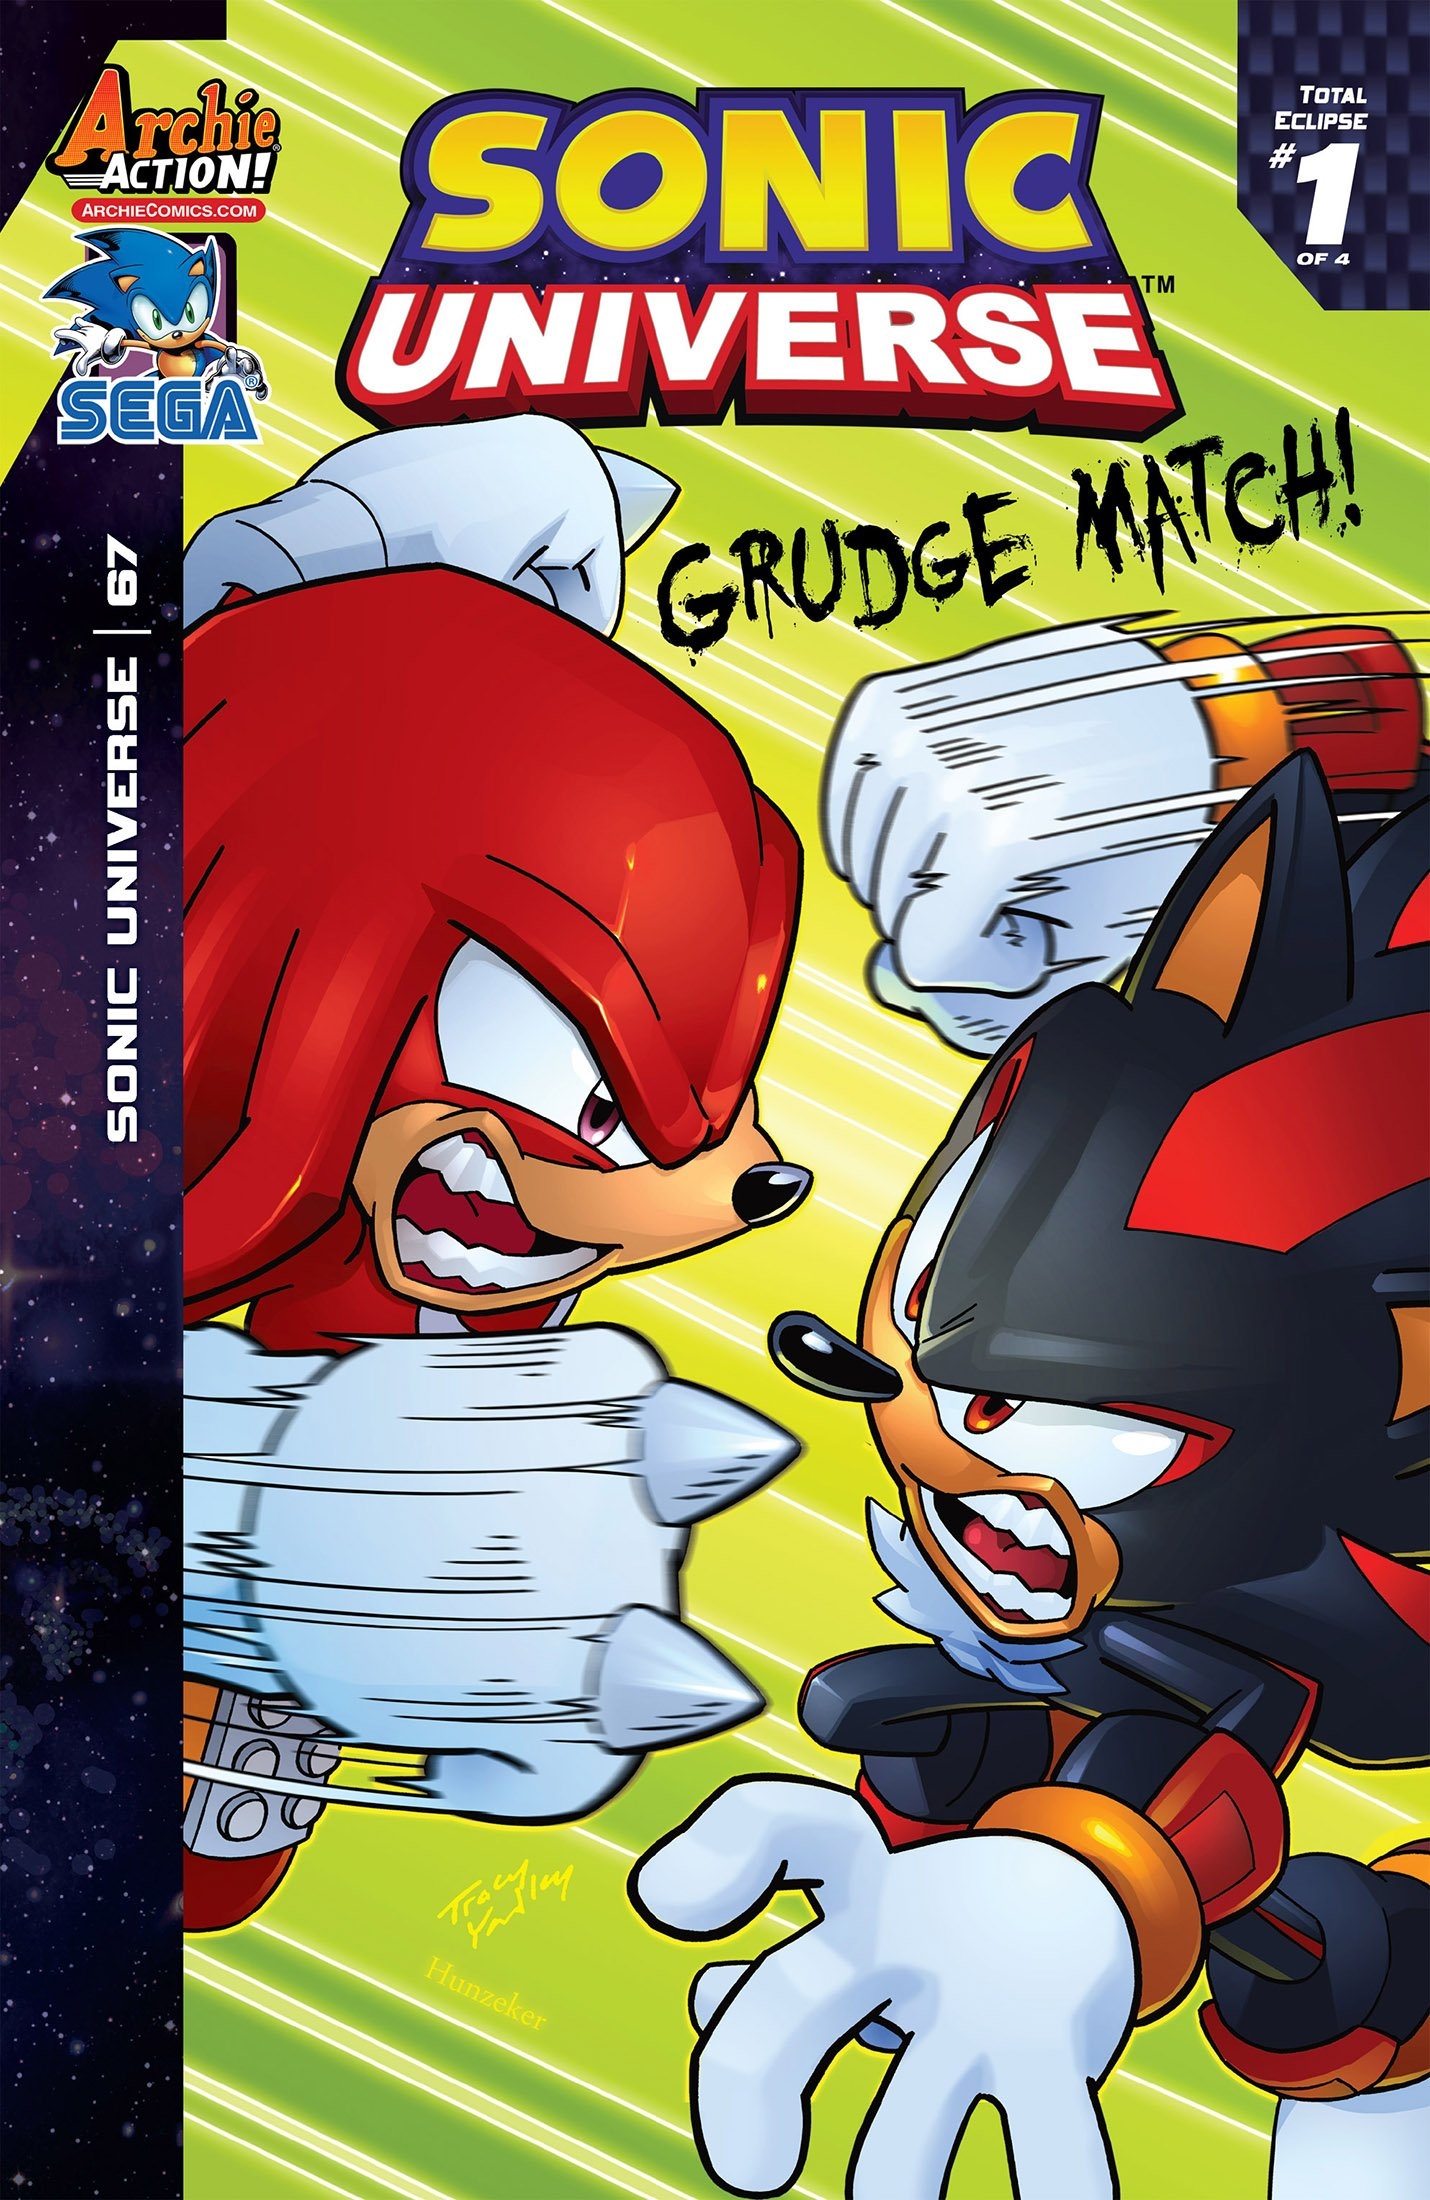 Sonic Universe 067 (October 2014)